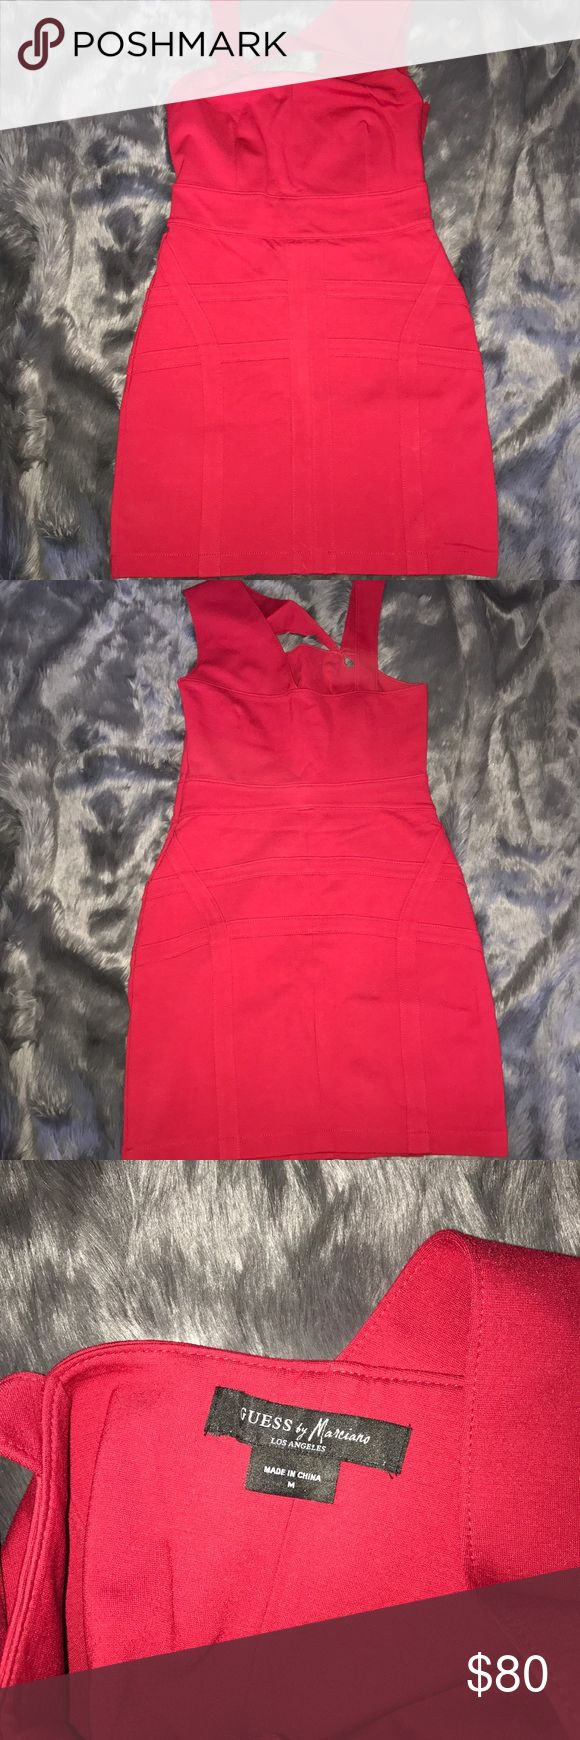 Guess by Marciano red dress sz medium worn once Guess by Marciano red dress sz medium worn once Guess by Marciano Dresses